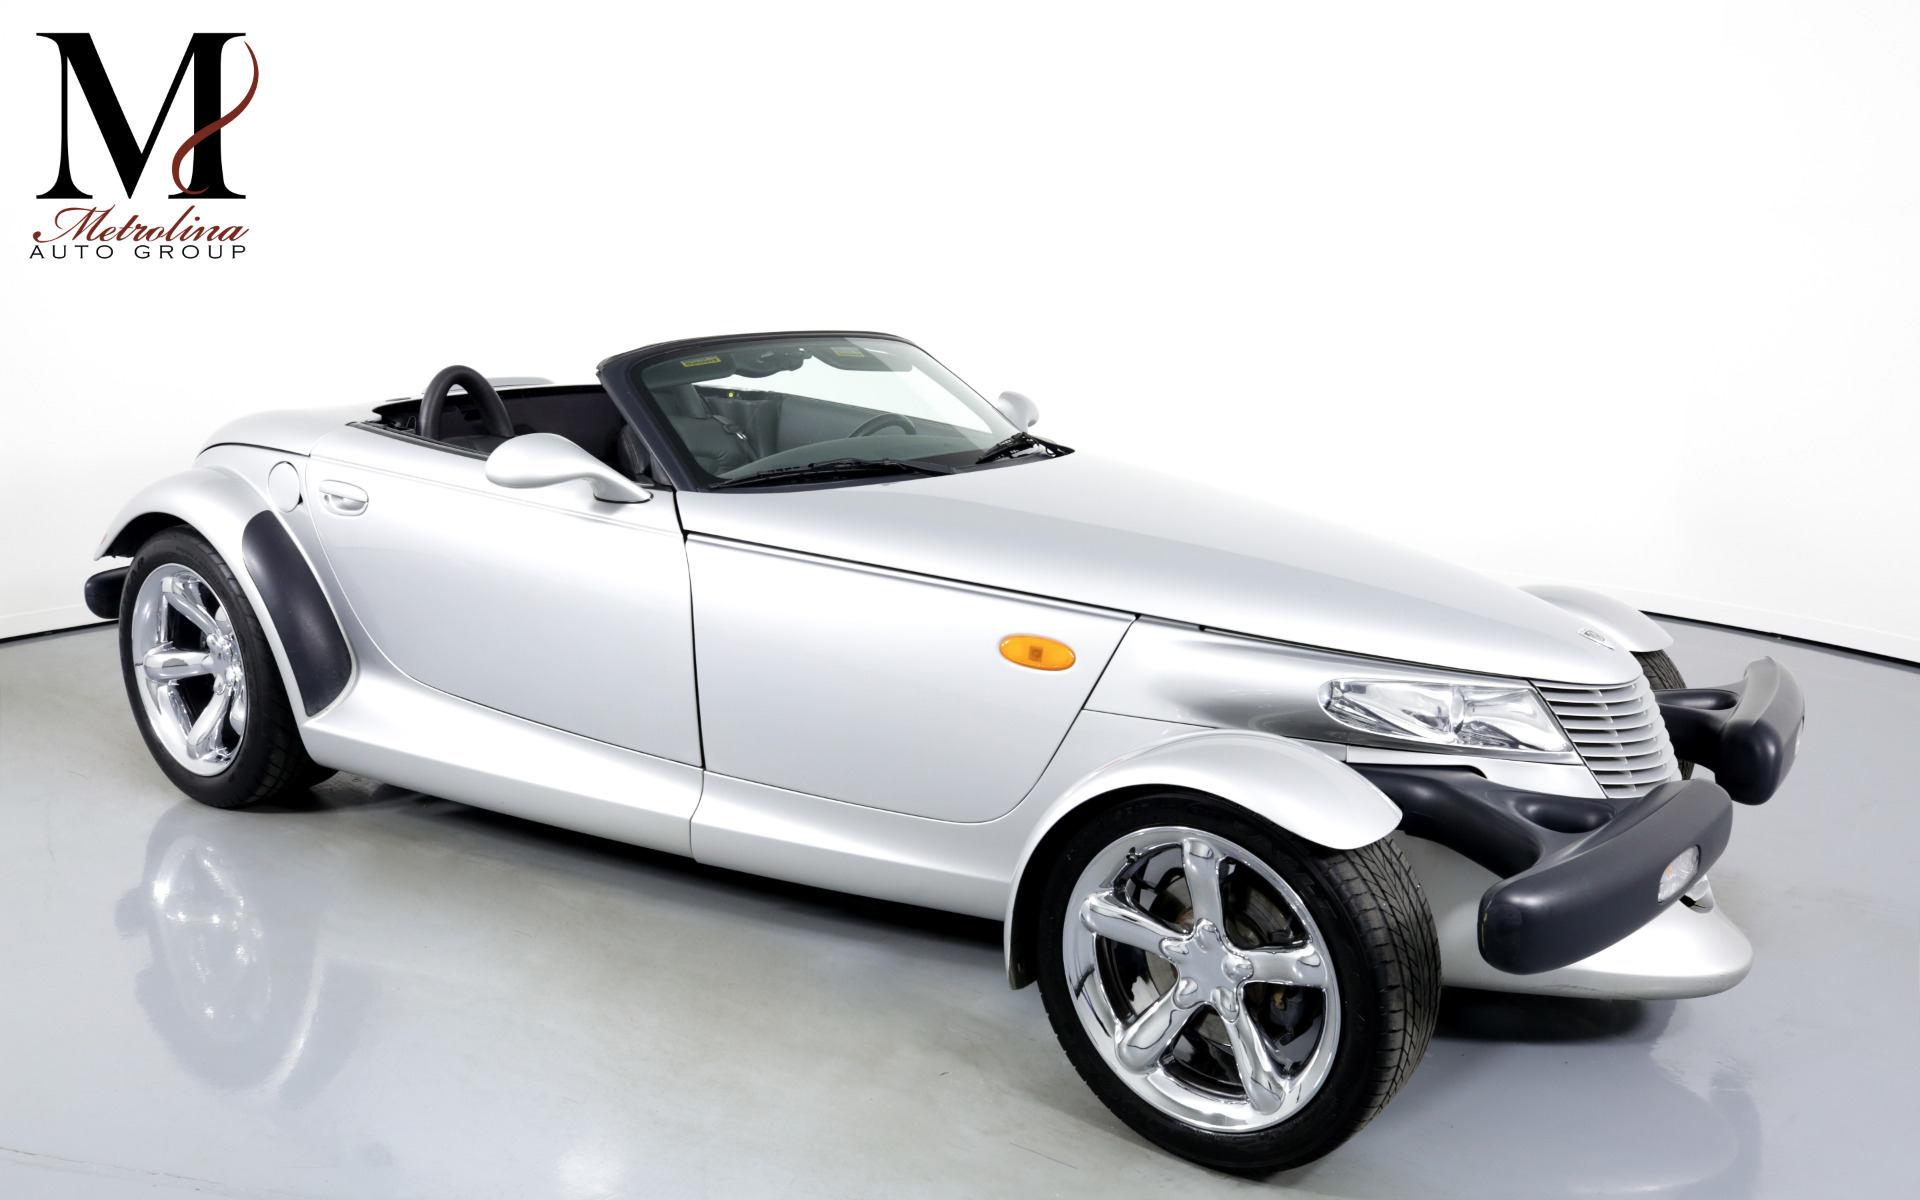 Used 2001 Chrysler Prowler for sale $25,996 at Metrolina Auto Group in Charlotte NC 28217 - 1